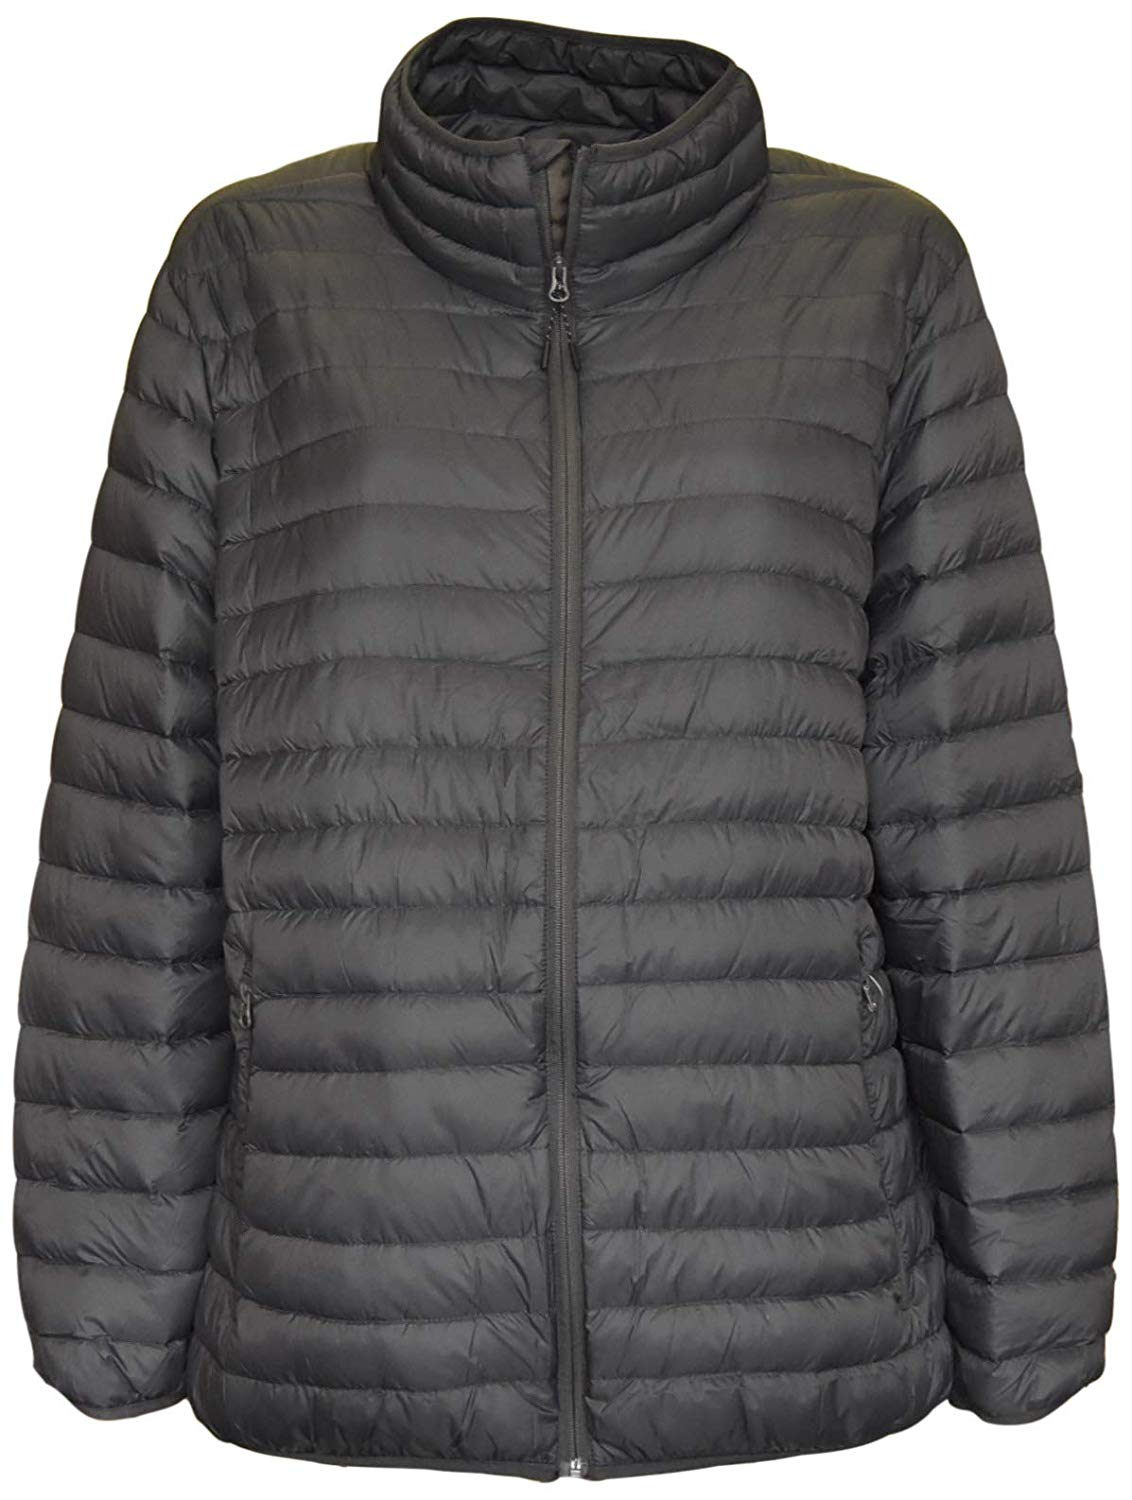 FLCH+YIGE Men Packable Down Quilted Jacket Lightweight Puffer Jacket